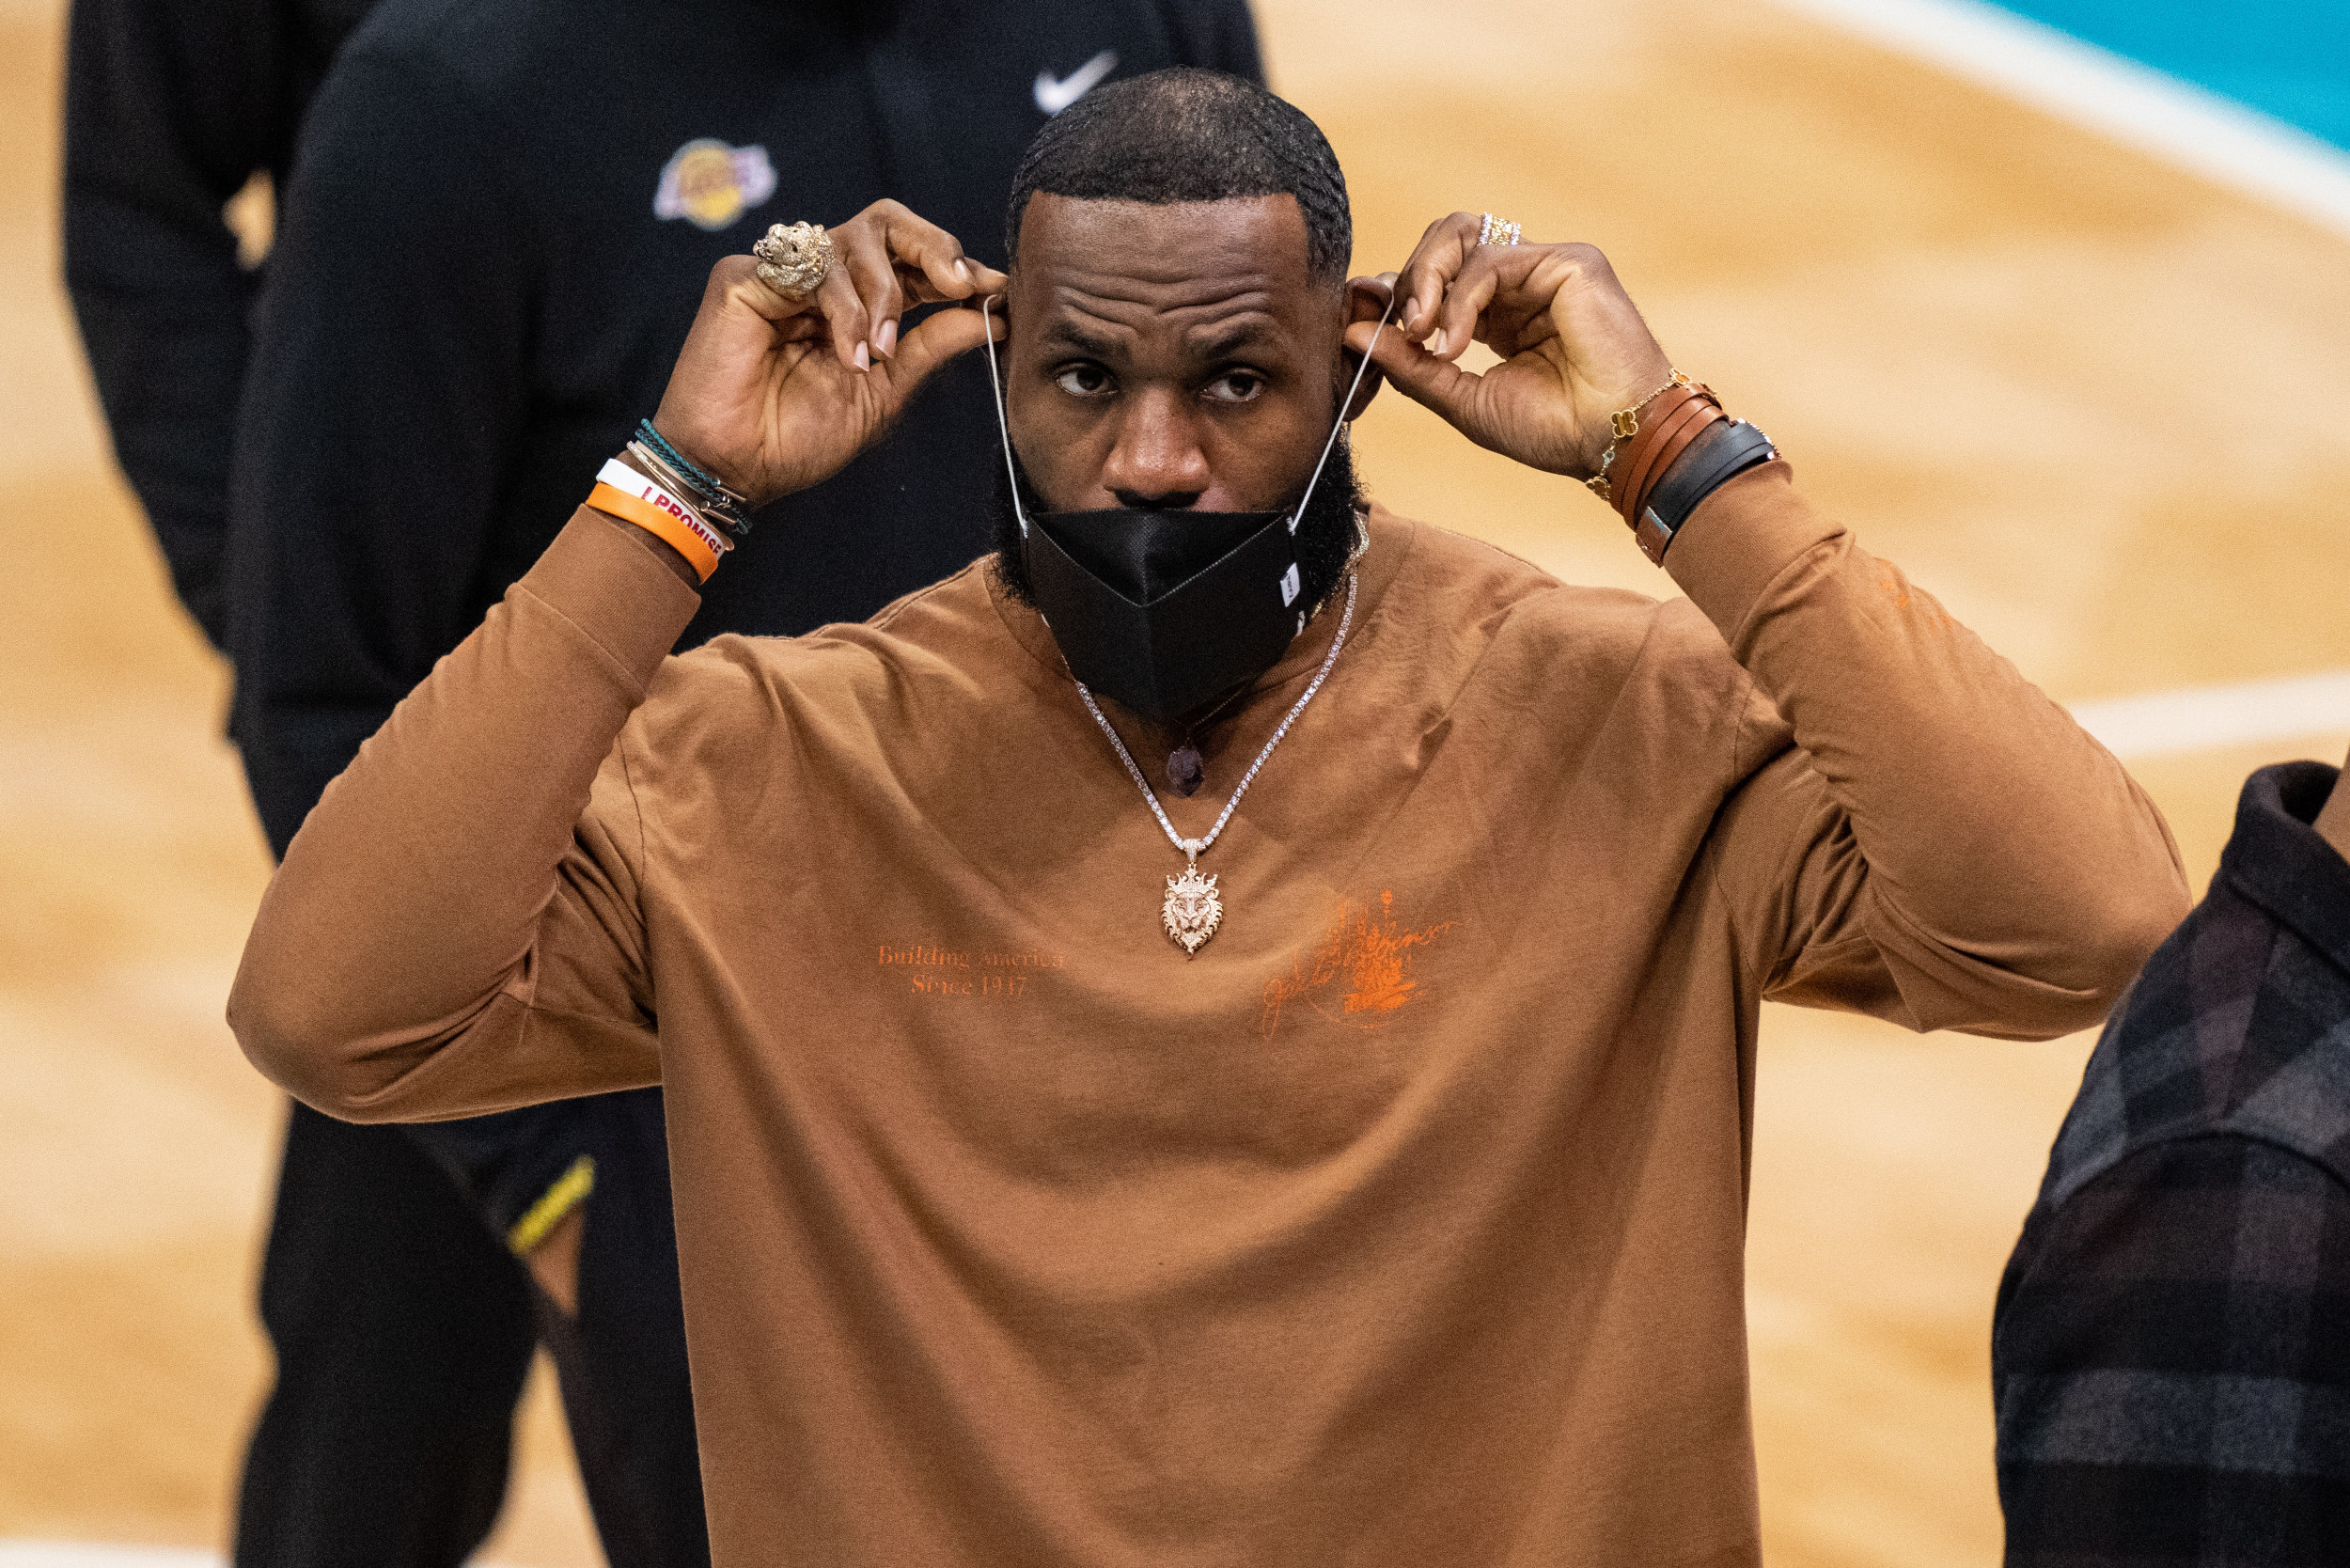 LeBron James Aghast at Las Vegas Raiders 'I Can Breathe' Remark: 'The F***'